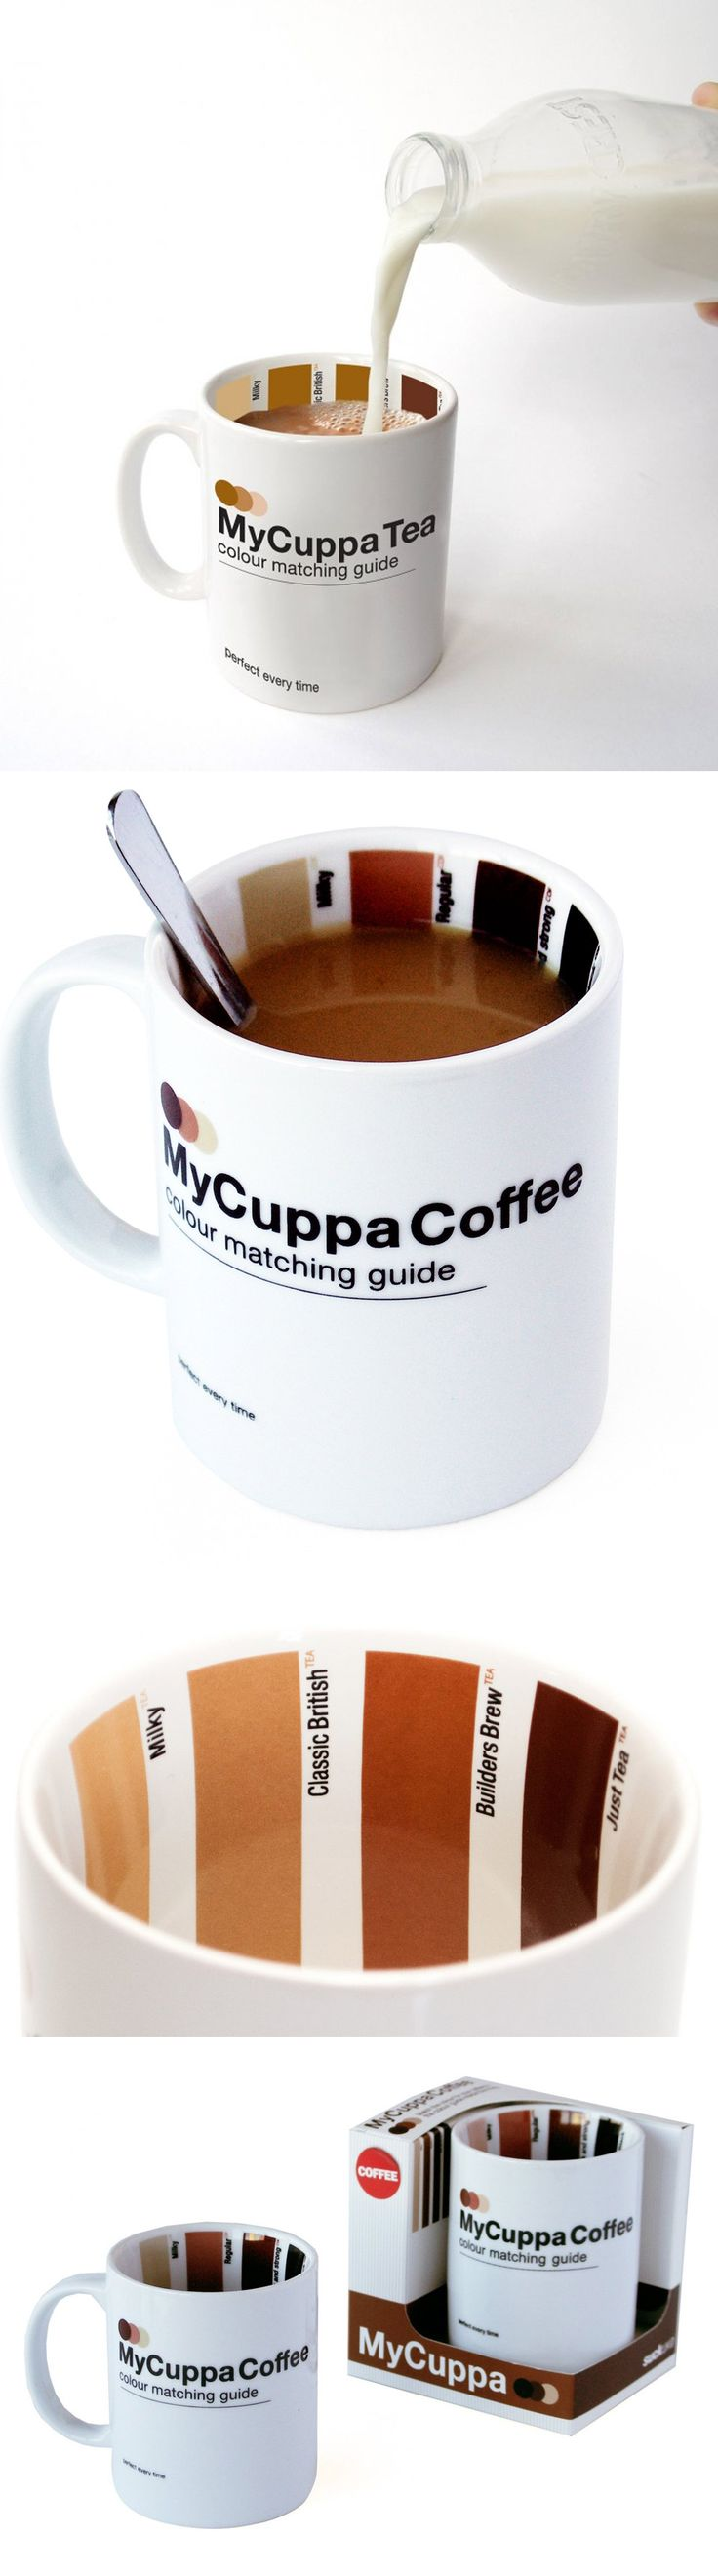 I wish every one who ordered coffee from me had this so when i put there cream in it wasn't a guessing game.